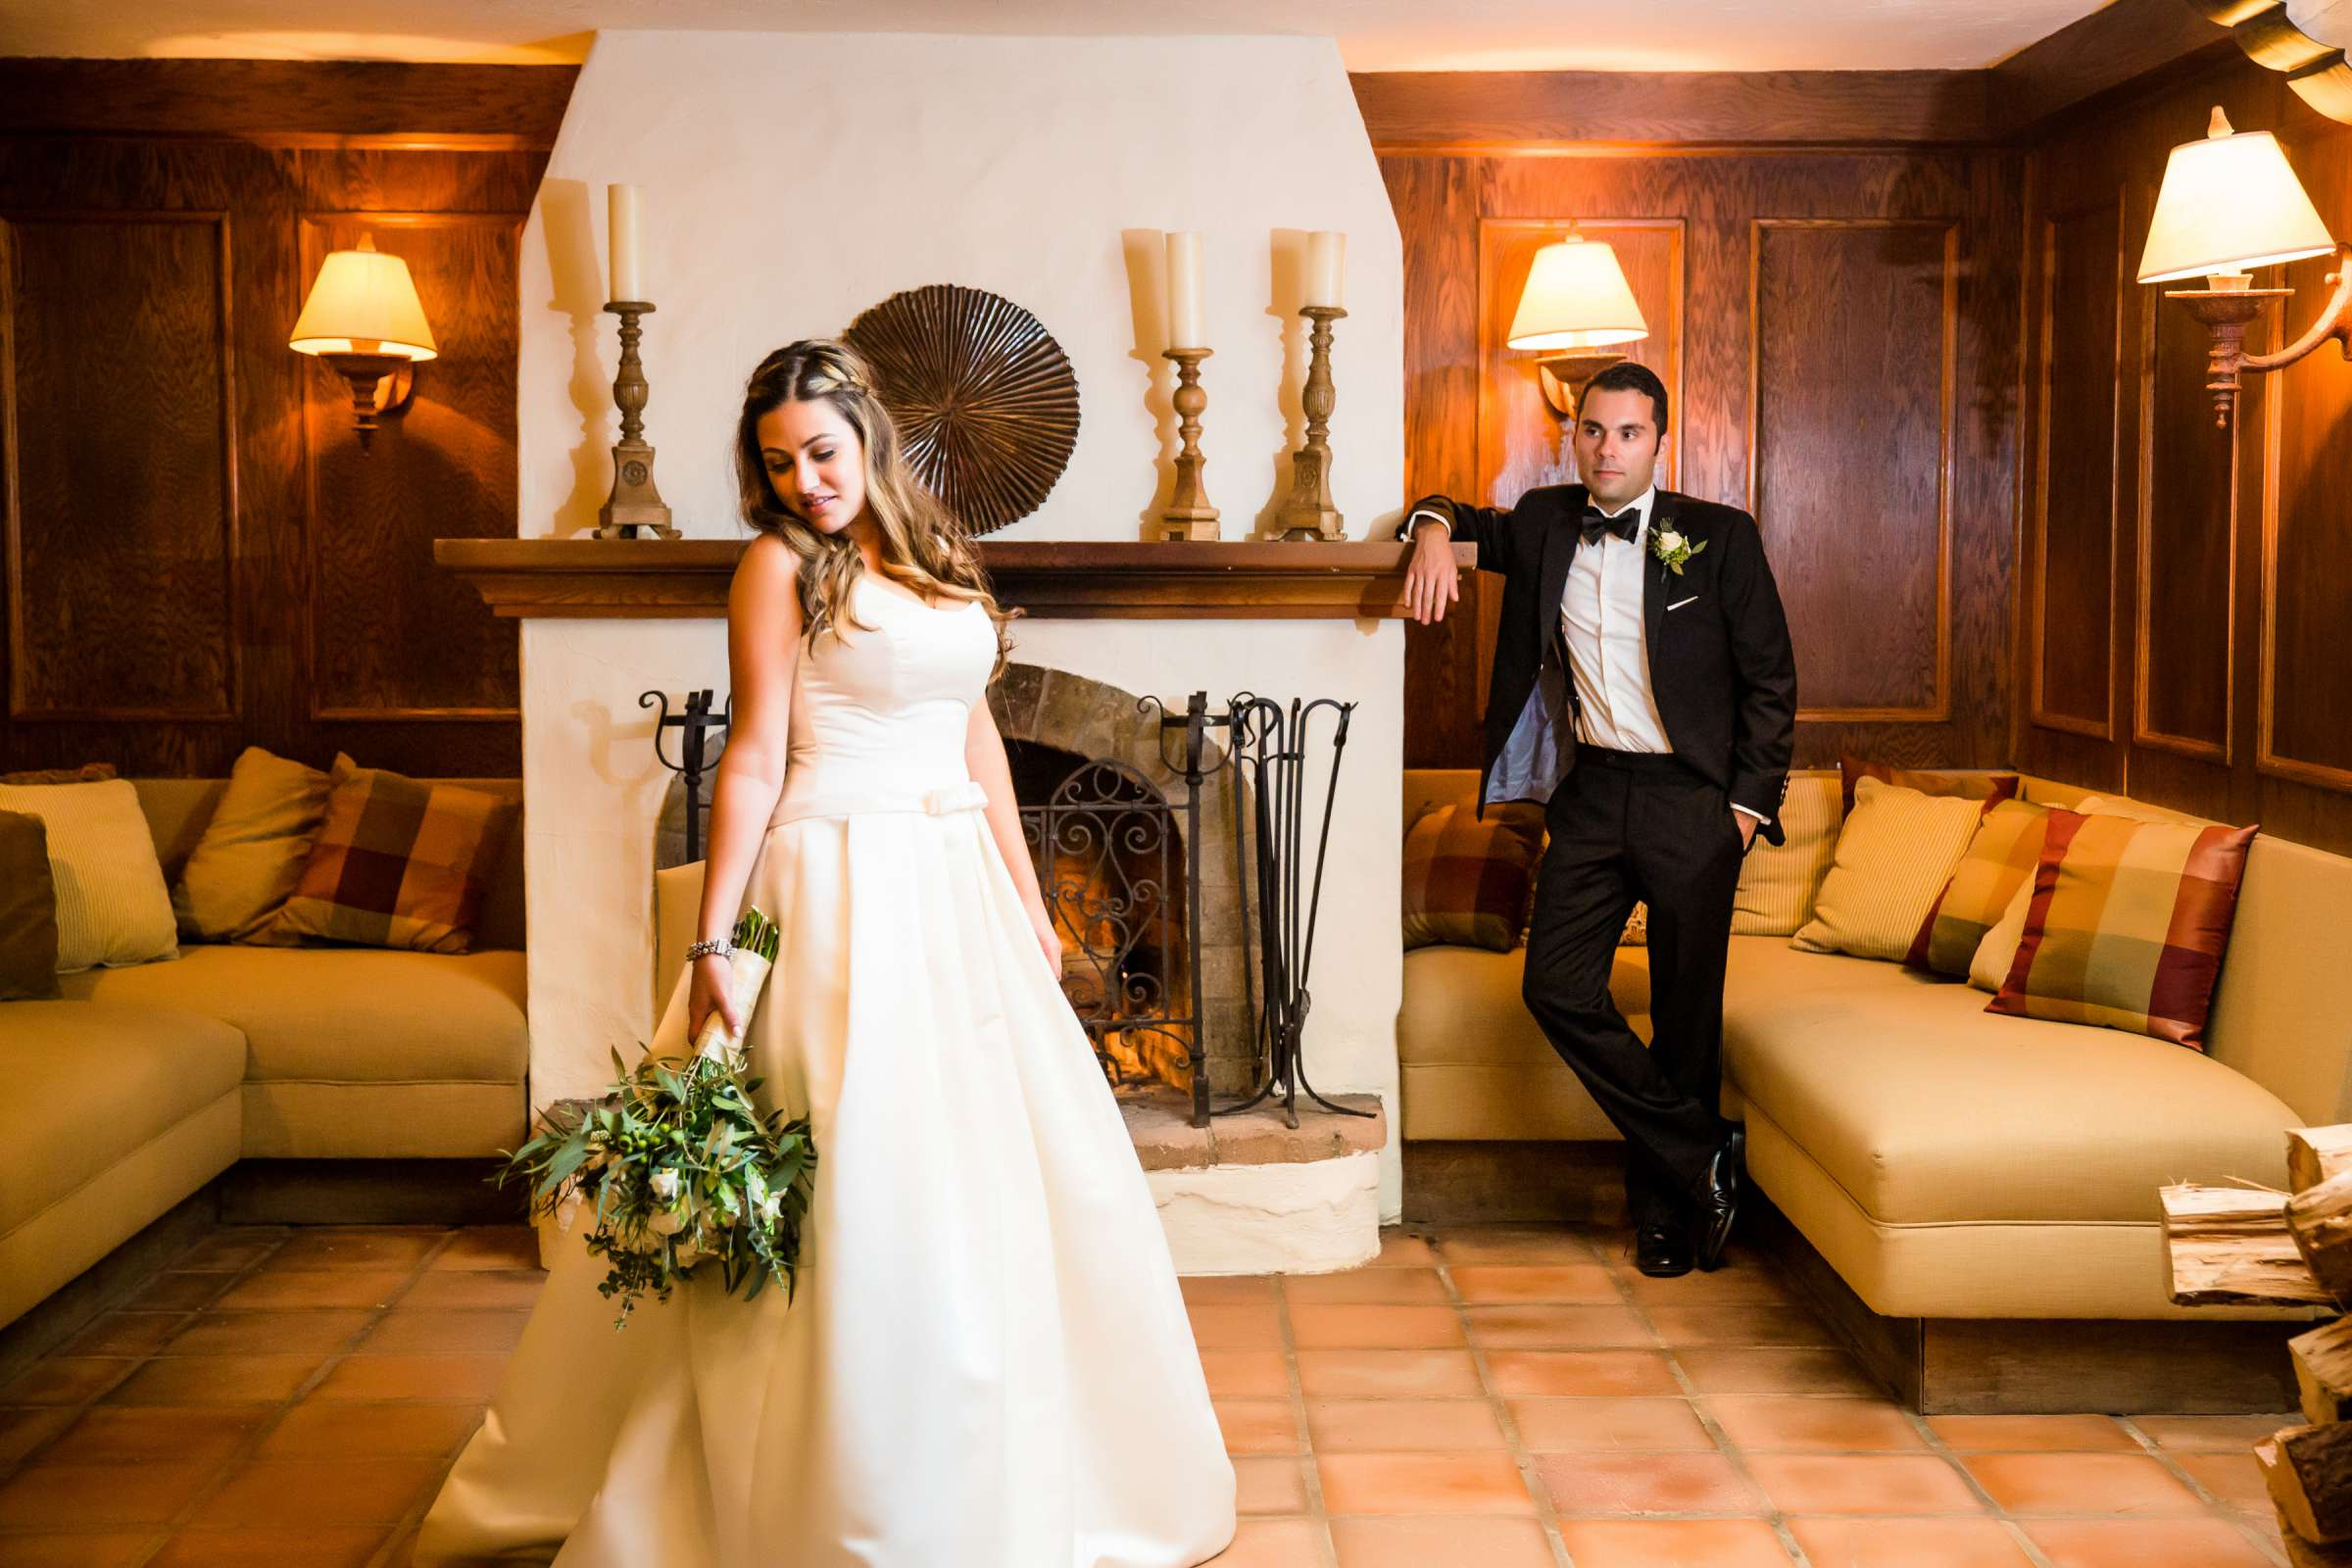 Rancho Bernardo Inn Wedding coordinated by Très Chic Events, Stefania and Nicholas Wedding Photo #65 by True Photography